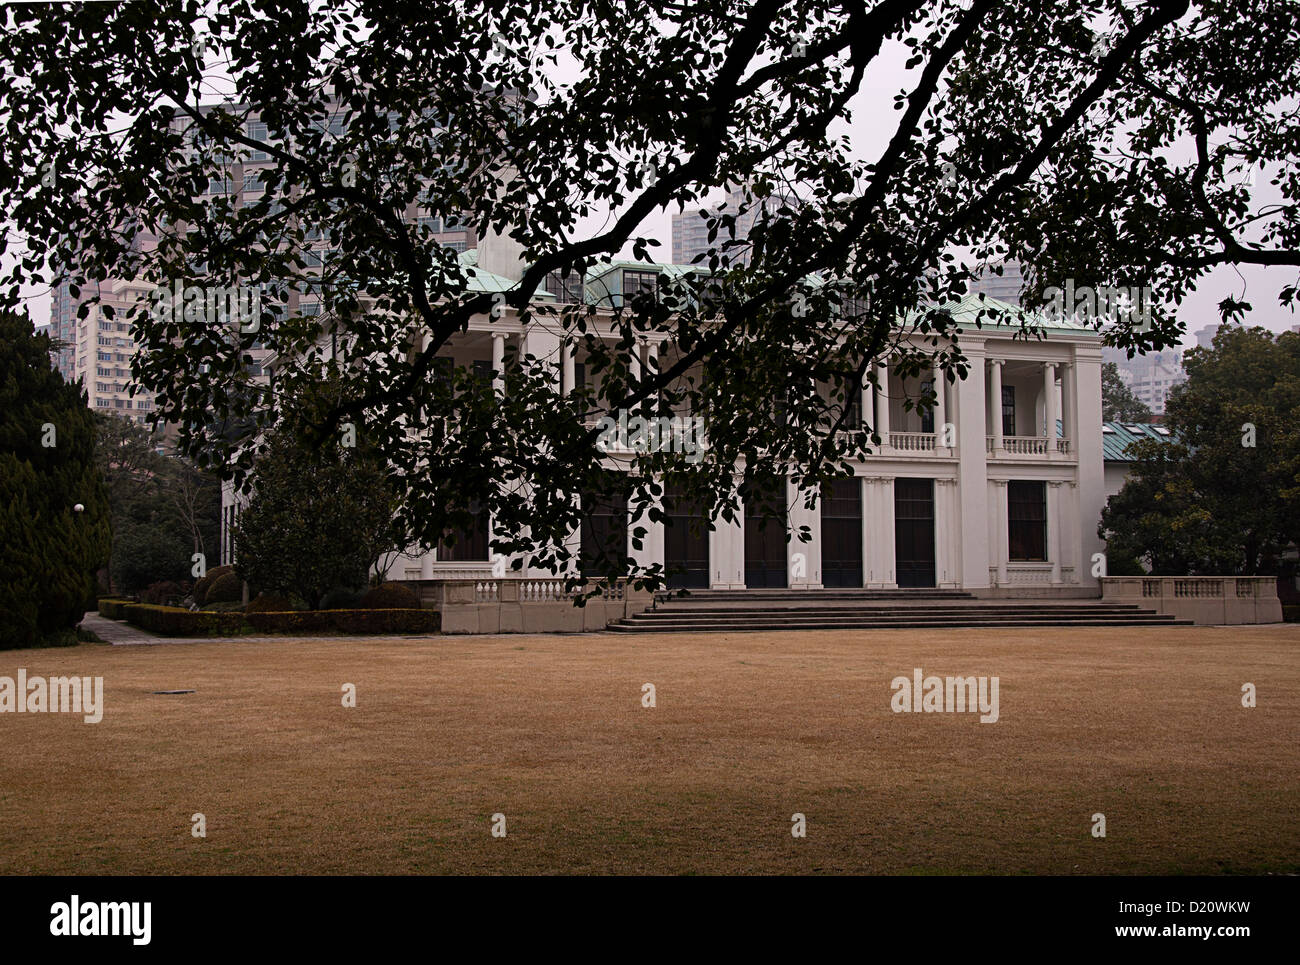 Classical Garden, Luxury House, Changning District,  Shanghai, China Stock Photo